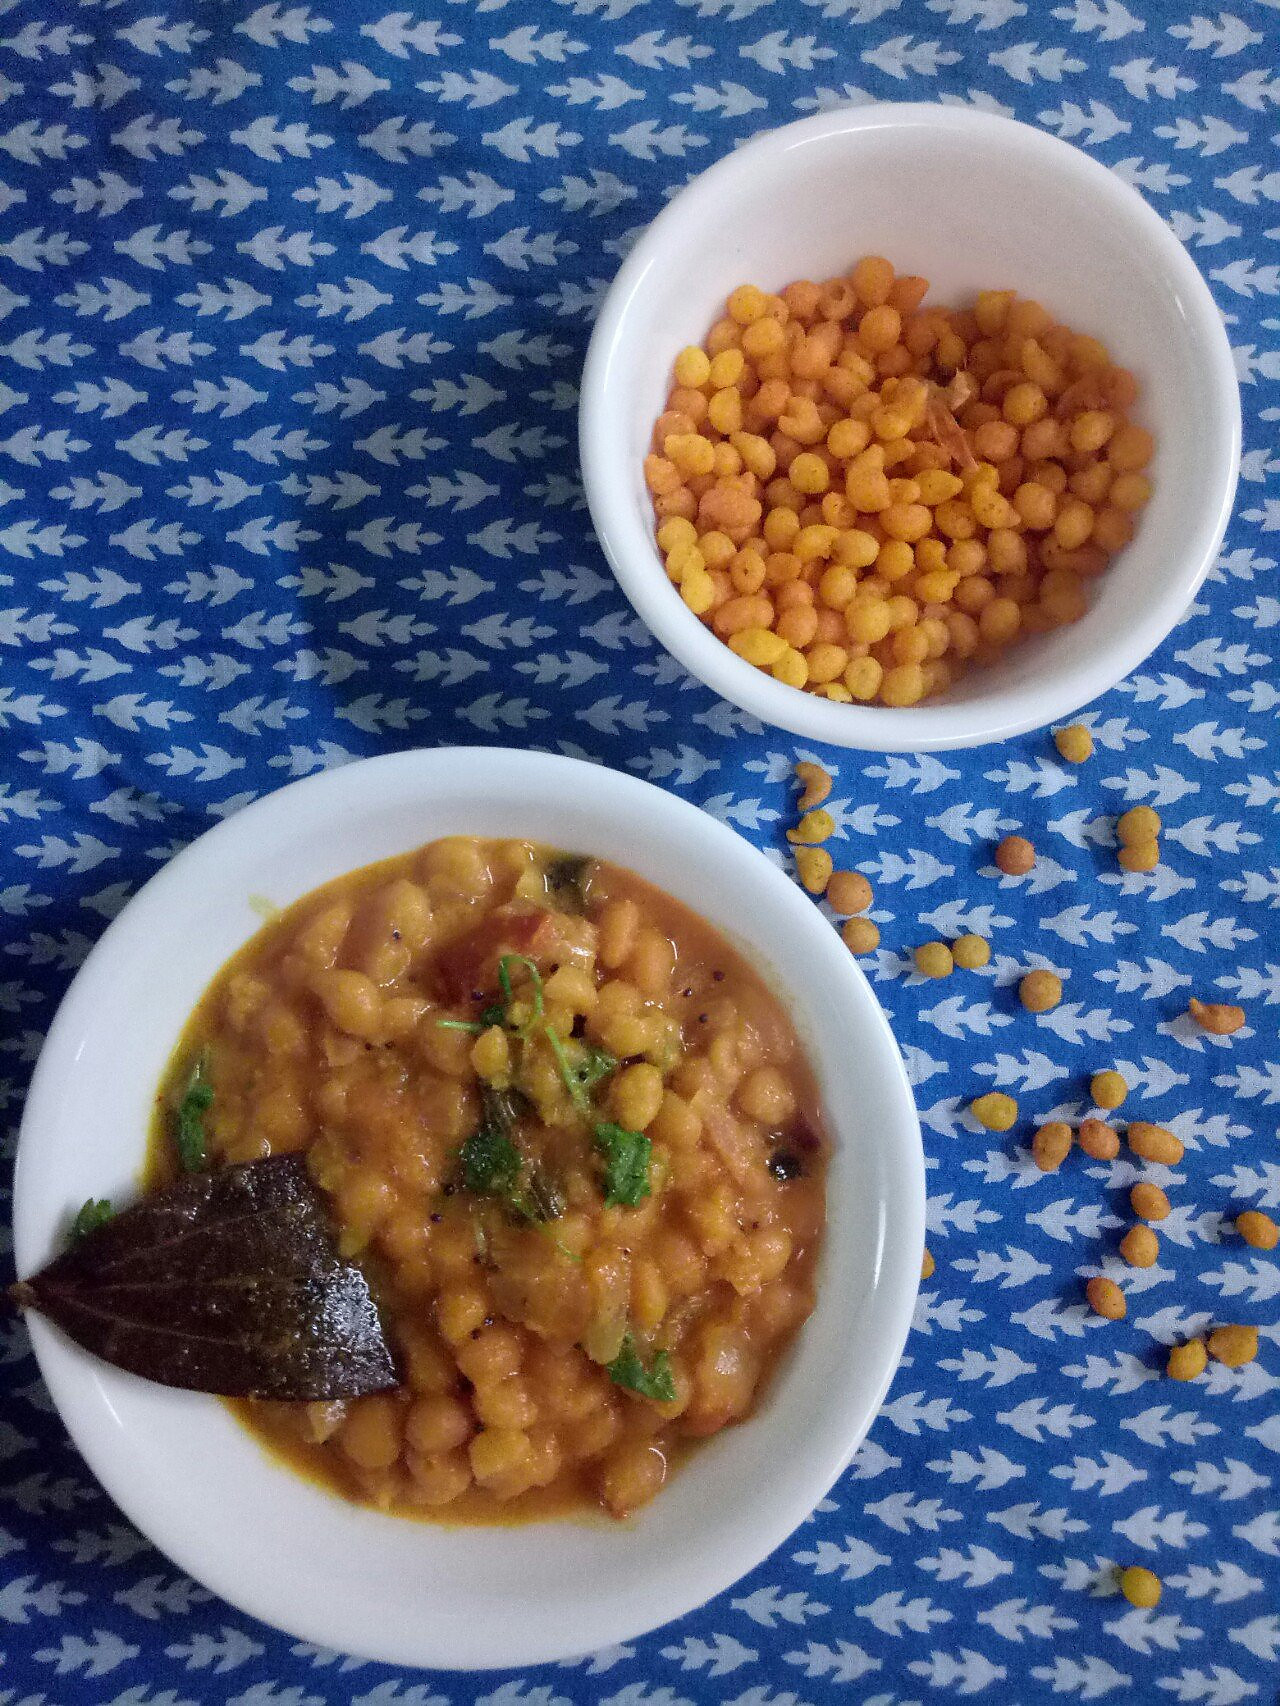 Kara Boondi Kurma Recipe - Boondi In Coconut Milk